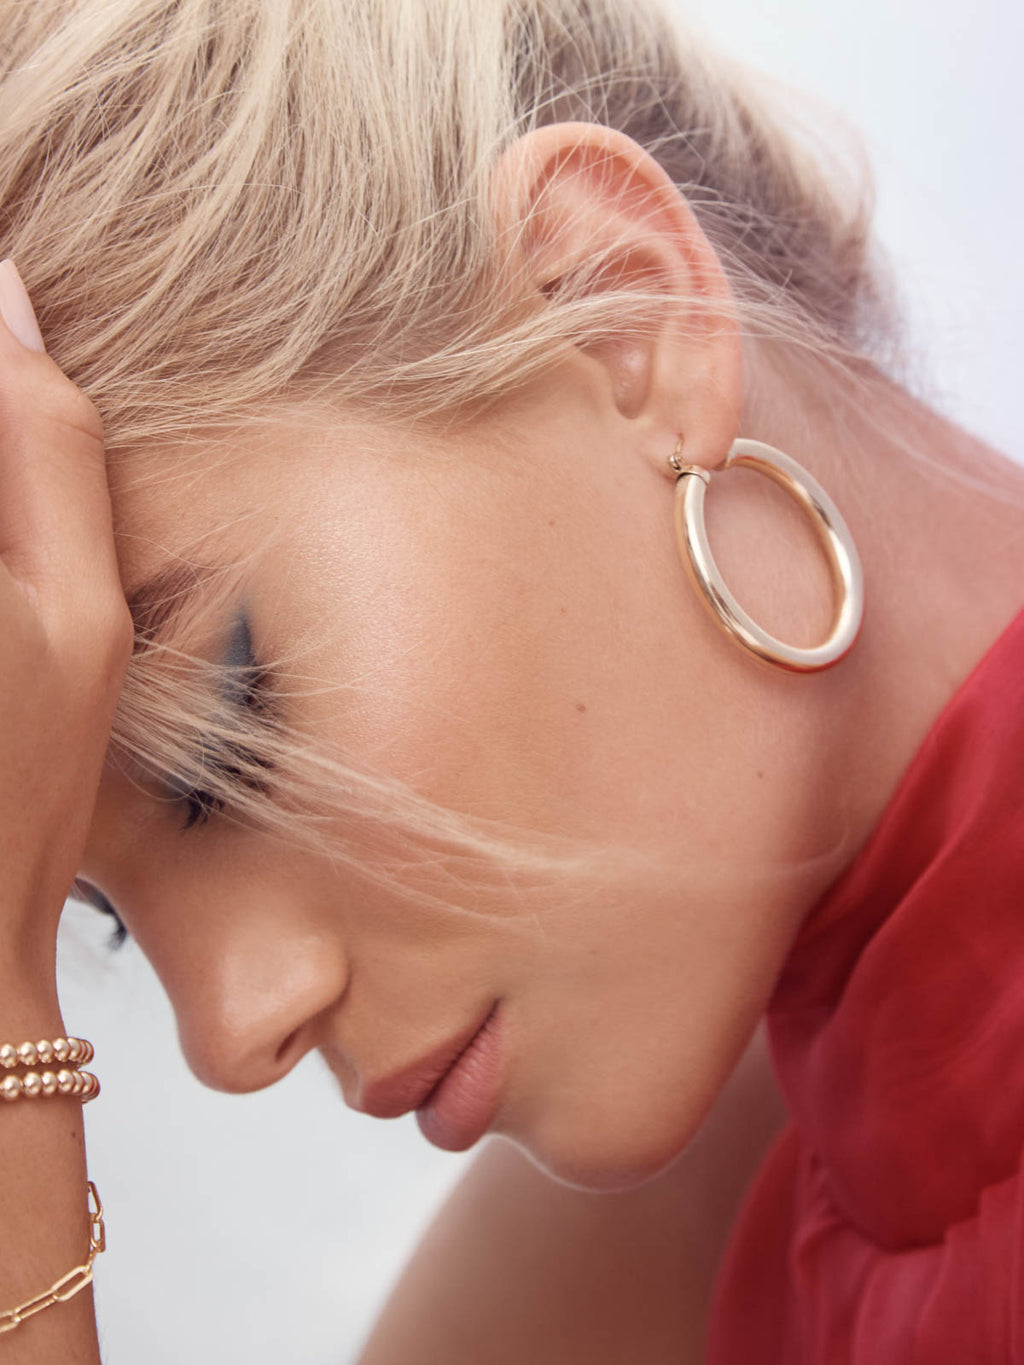 Gold filled Lightweight Hoops earrings by The Faint Hearted Jewelry